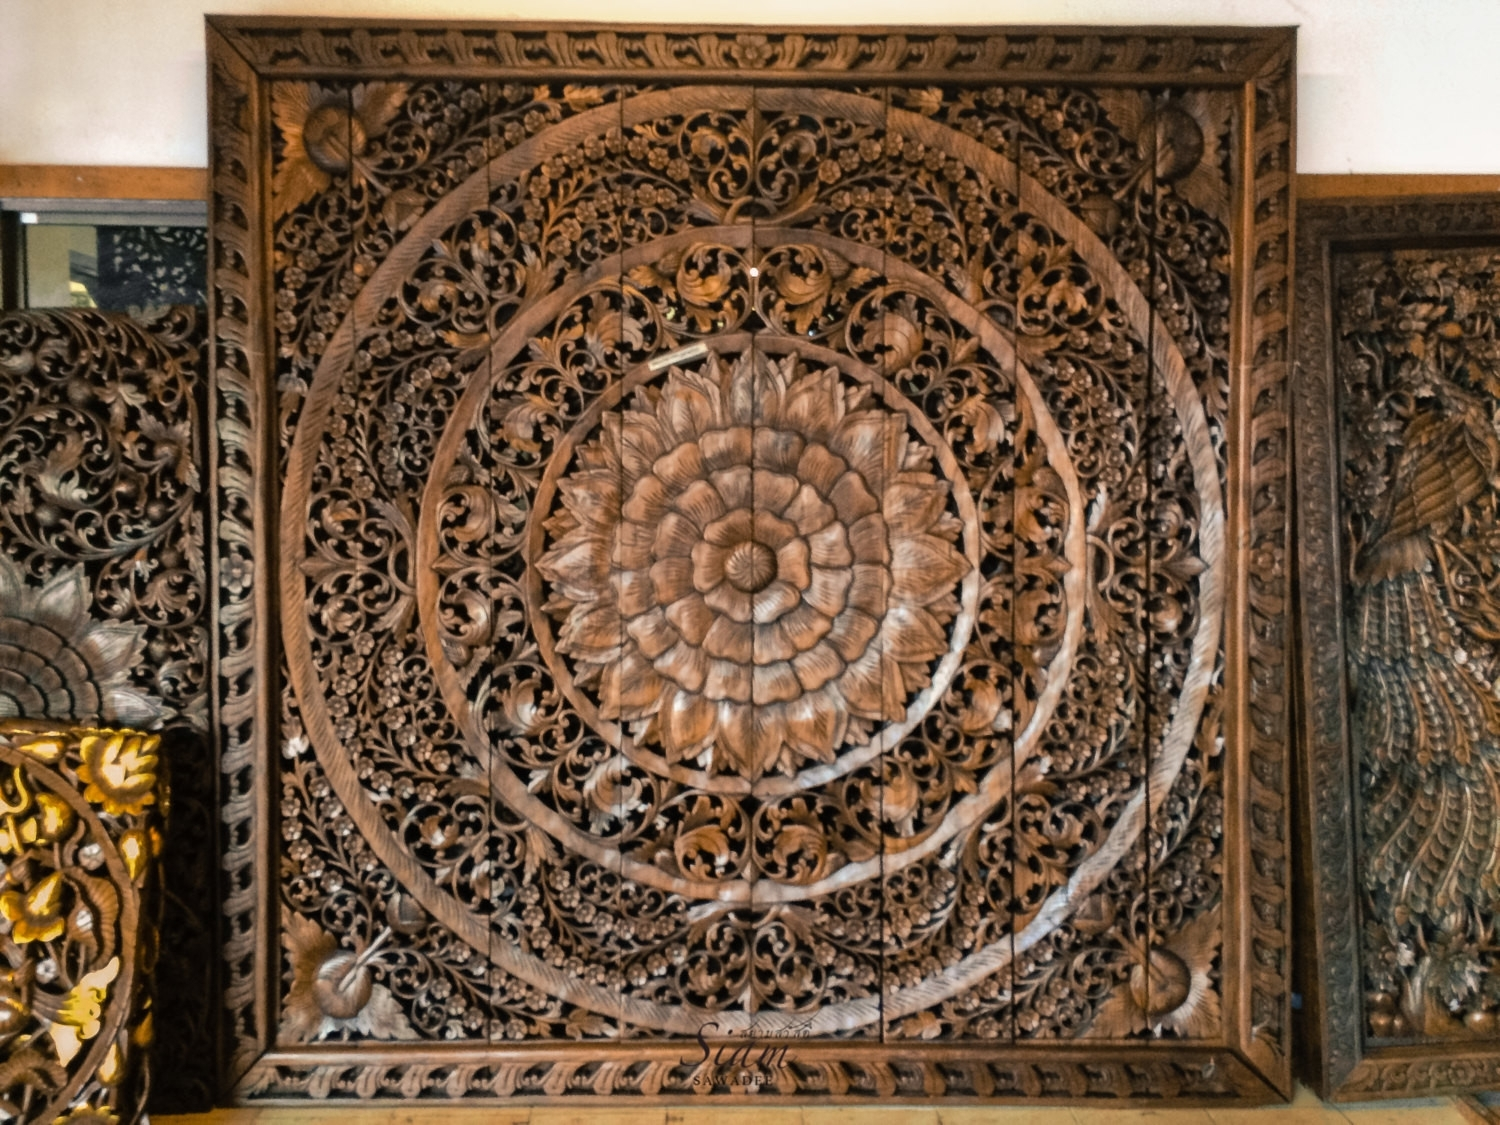 Lovely Large Carved Wood Wall Art - Kunuzmetals within Carved Wood Wall Art (Image 14 of 20)